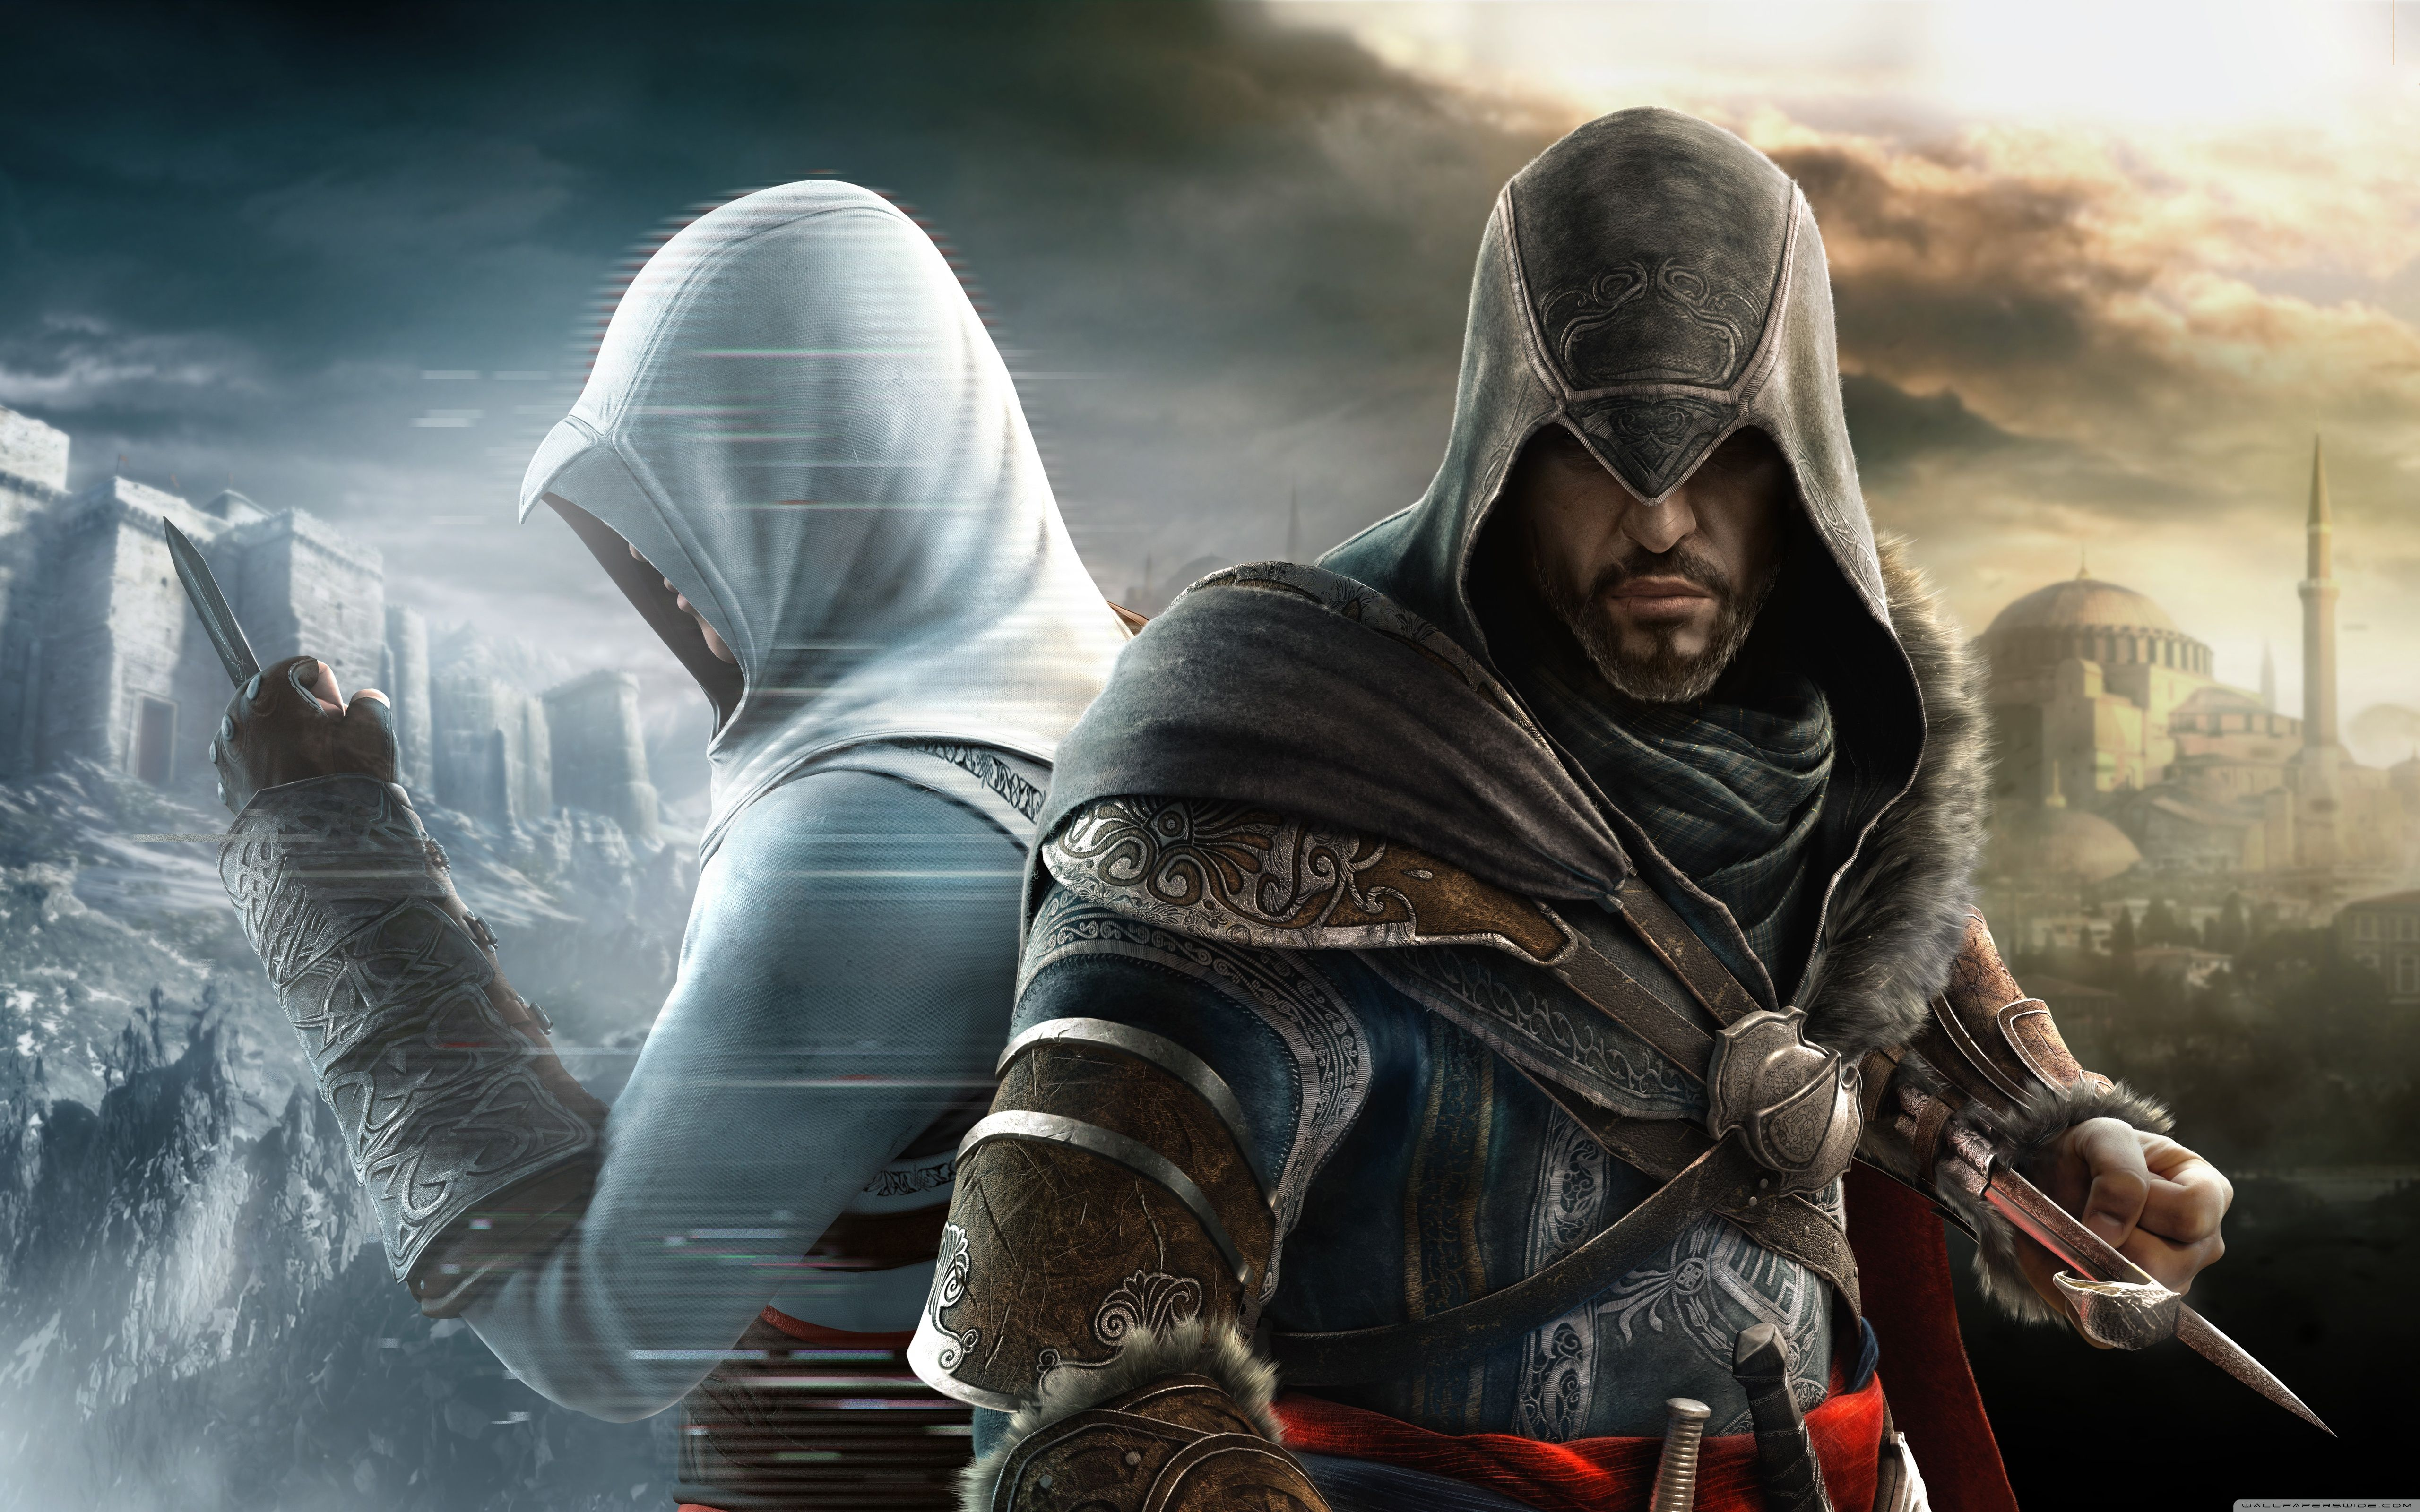 wallpaperswide.com/download/assassins_creed_revela...